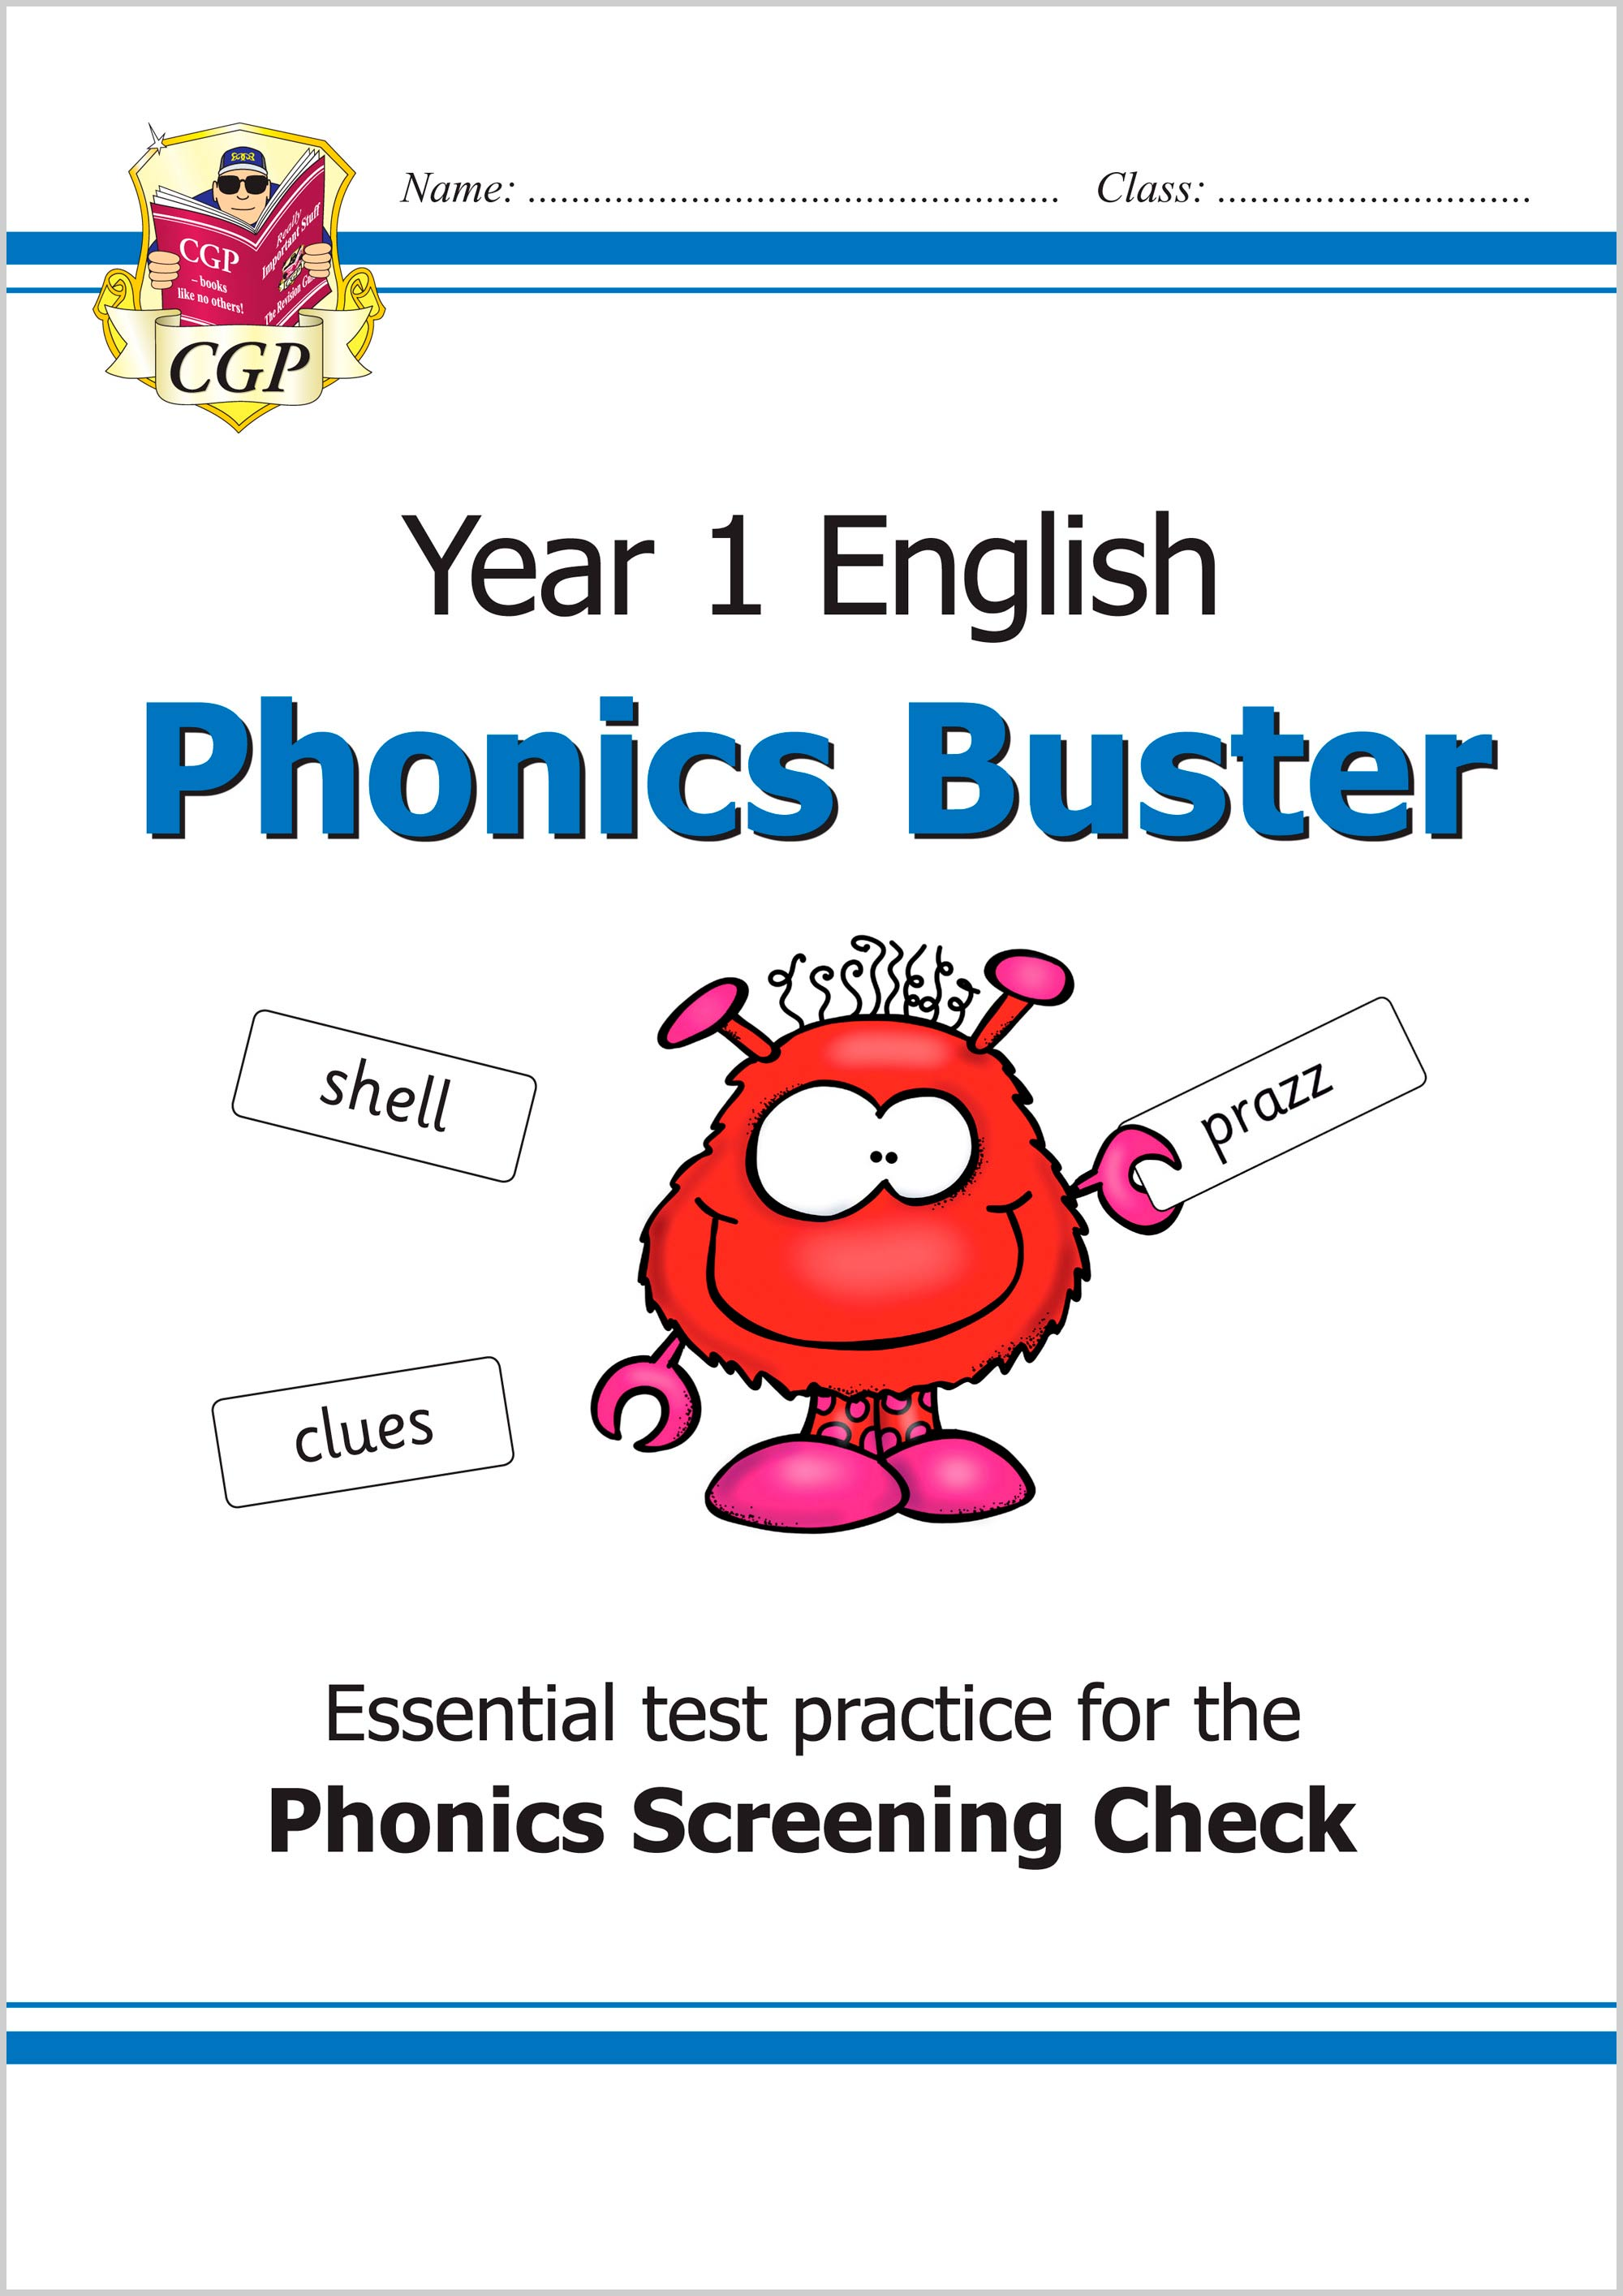 E1O11 - New KS1 English Phonics Buster - for the Phonics Screening Check in Year 1